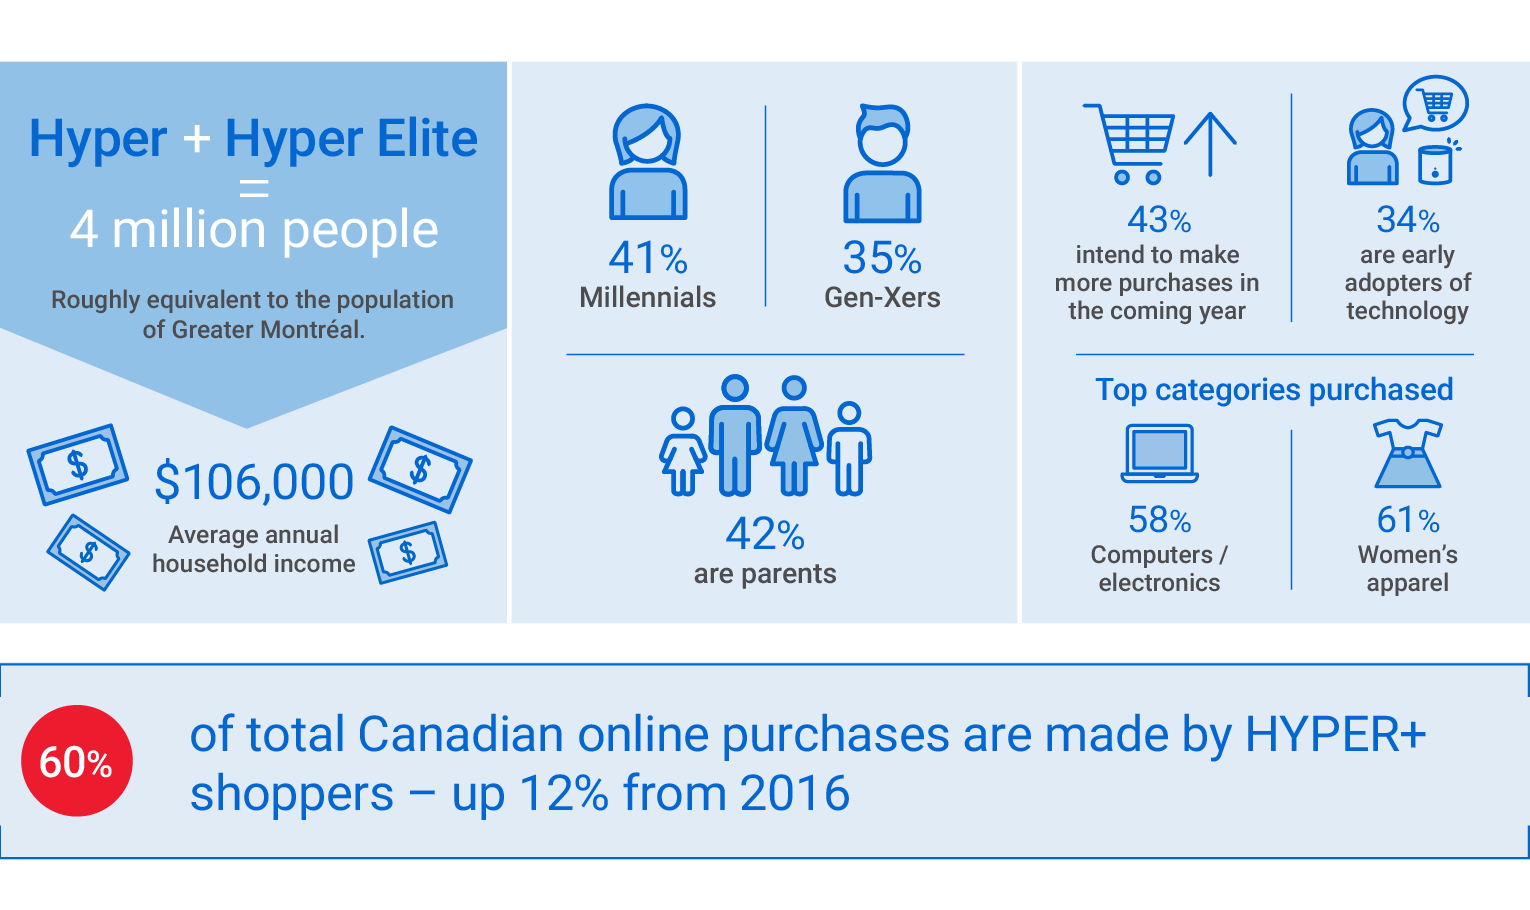 Hyper plus Hyper Elite Shoppers adds up to 4 million people, which is roughly equivalent to the population of Greater Montreal. Their average annual household income is $106,000. 41 per cent of them are Millennials and 35 per cent are Gen-Xers. 42 per cent are parents. 43 per cent intend to make more purchases in the coming year. 34 per cent are early adopters of technology. The top categories of goods purchases are Computers/electronics (58 per cent) and Women's apparel (61 per cent). 60 per cent of all Canadian online purchases are made by the HYPER+ shoppers – a 12 per cent increase since 2016.